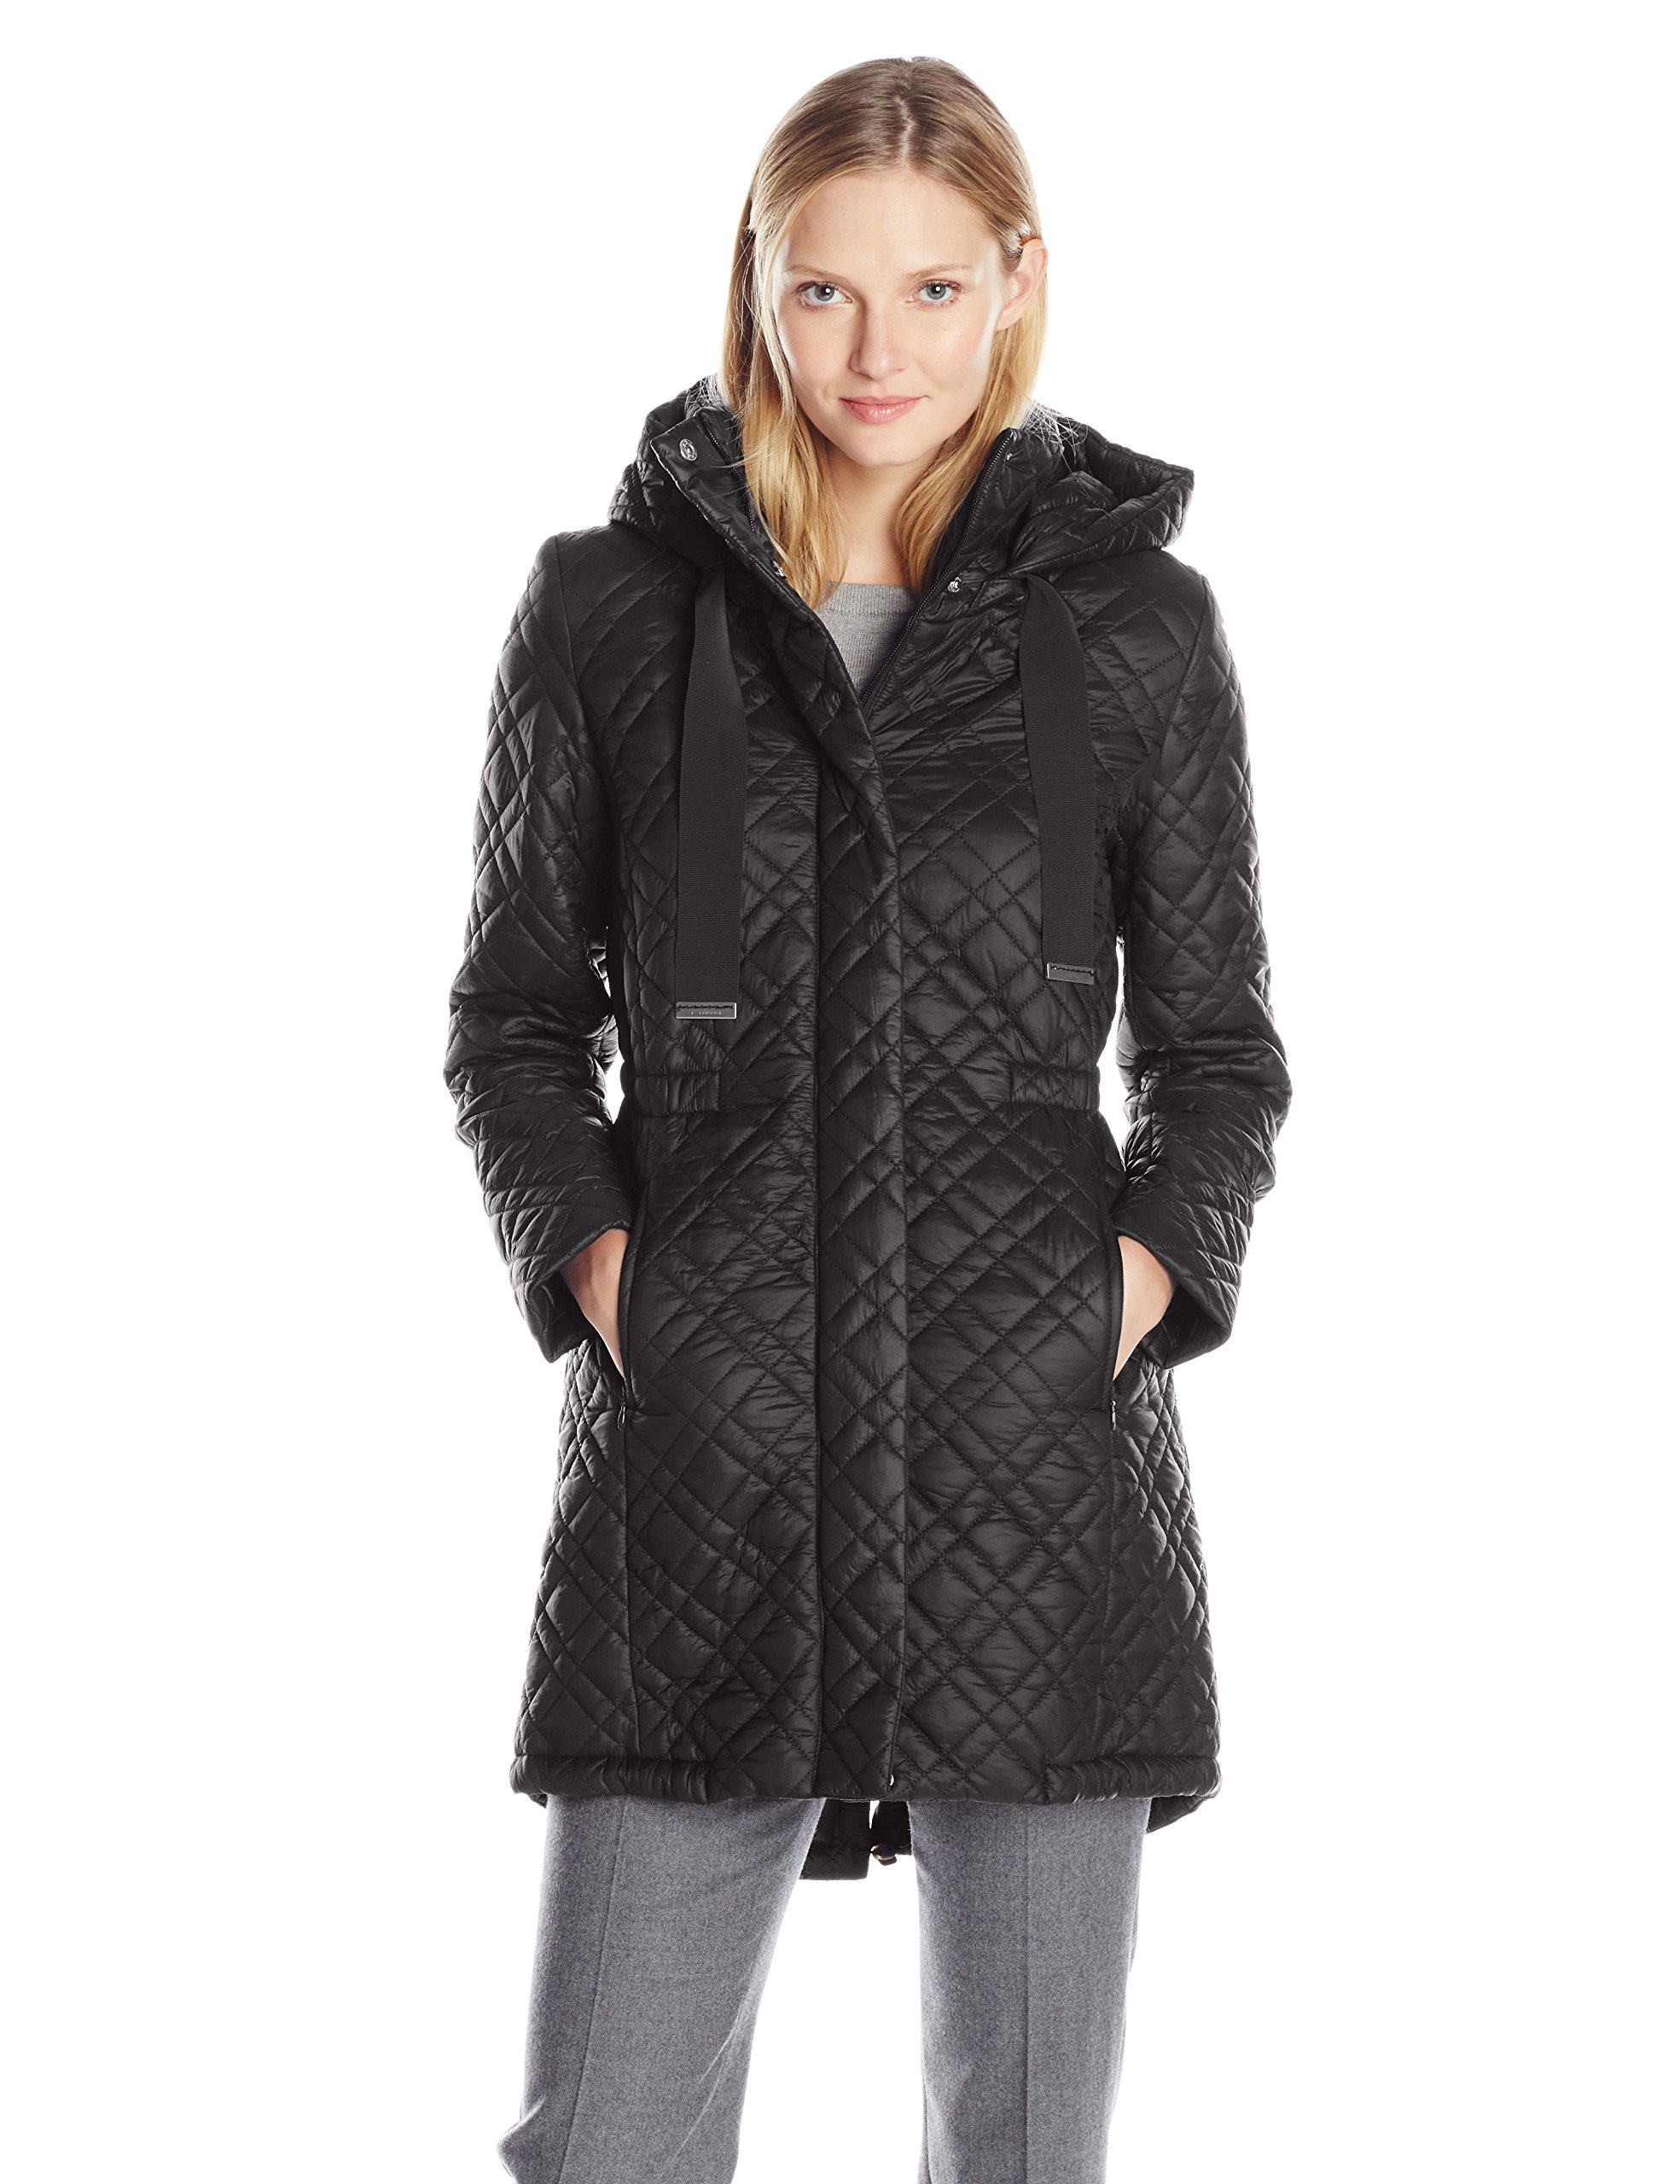 T Tahari Women's Mary Kate Quilted Coat, Black, X-Small